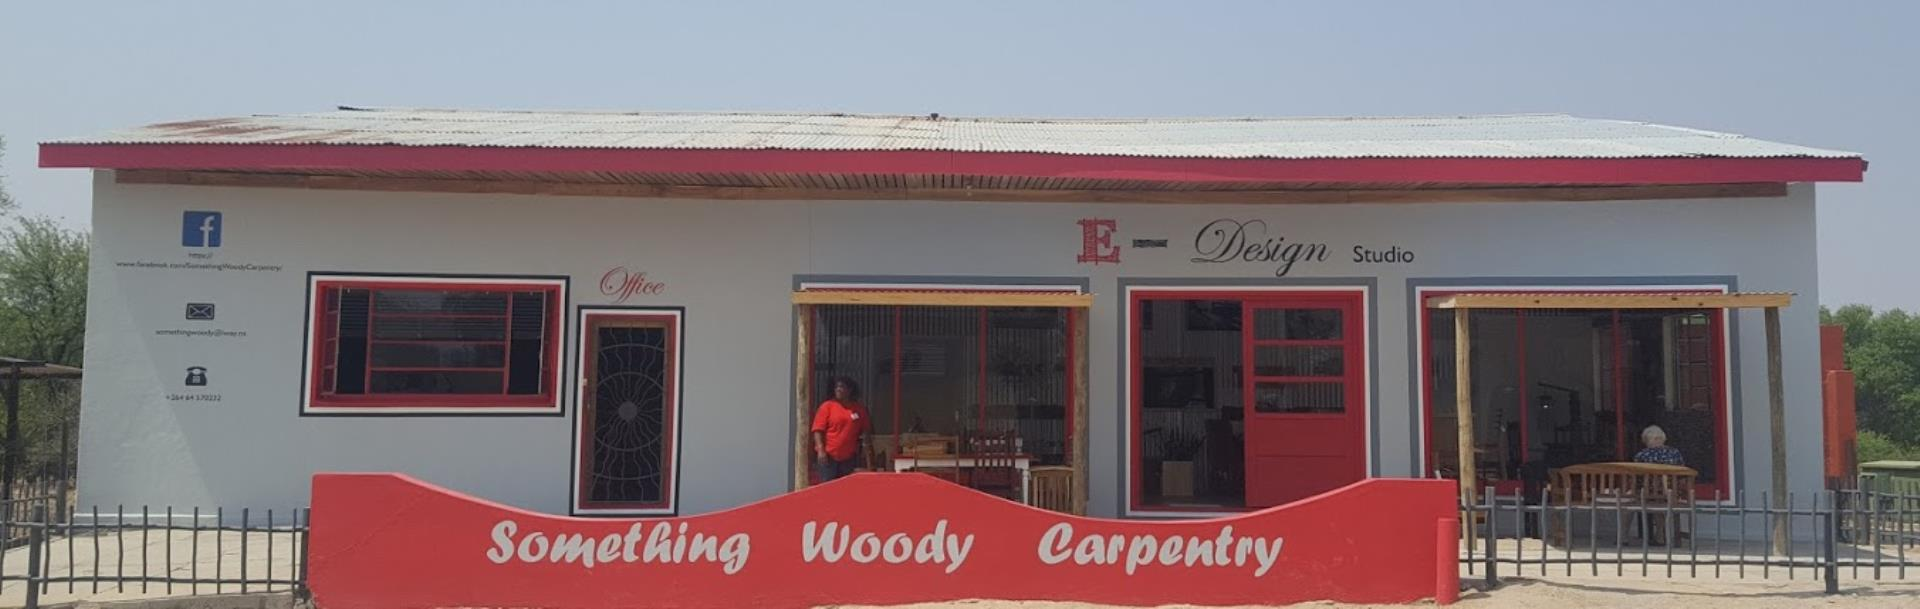 0 Bedroom  Commercial for Sale in Omaruru - Erongo